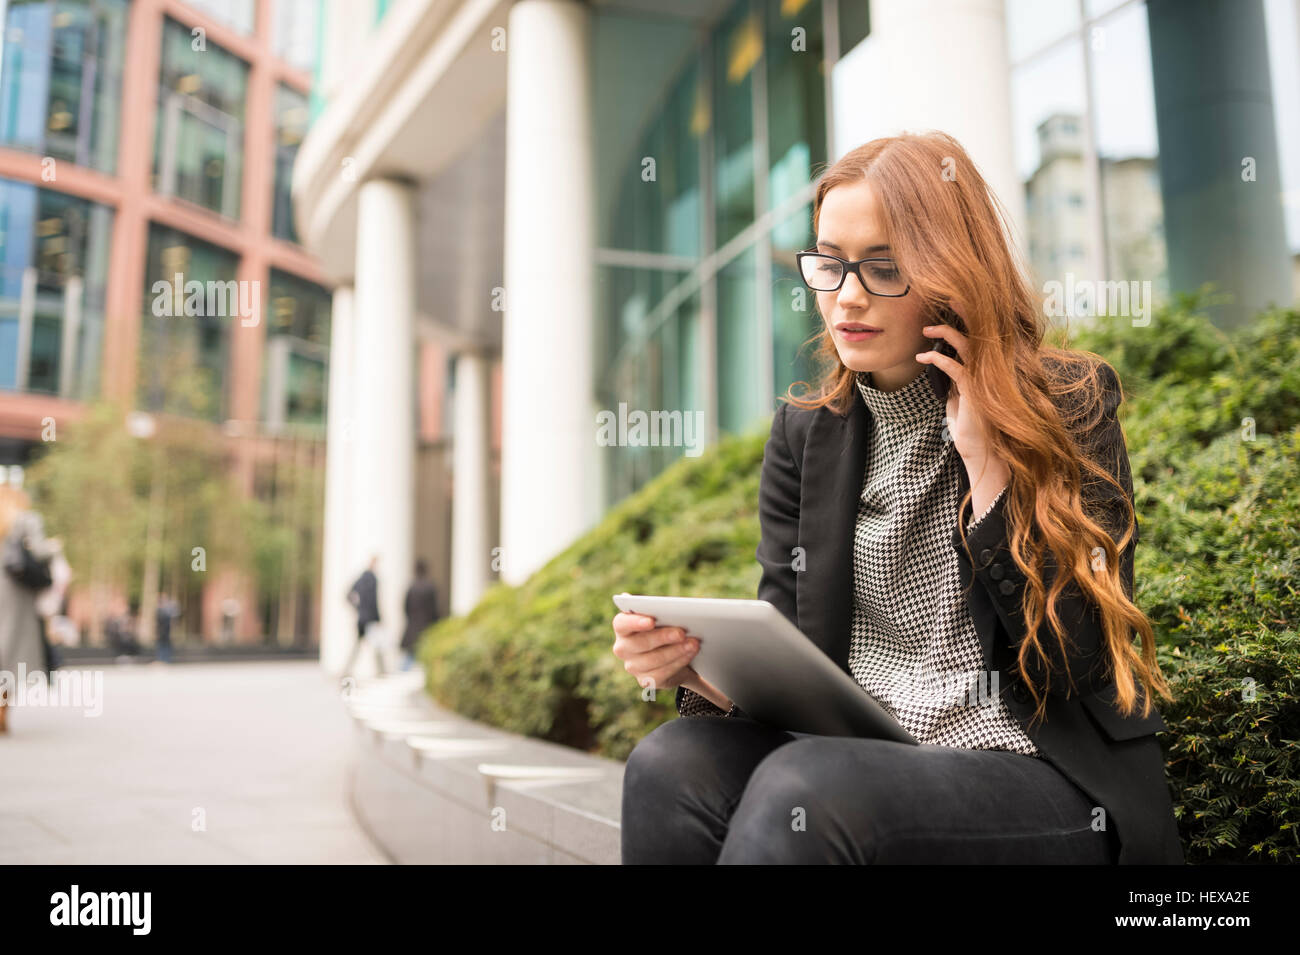 Businesswoman in city making telephone call, using digital tablet - Stock Image